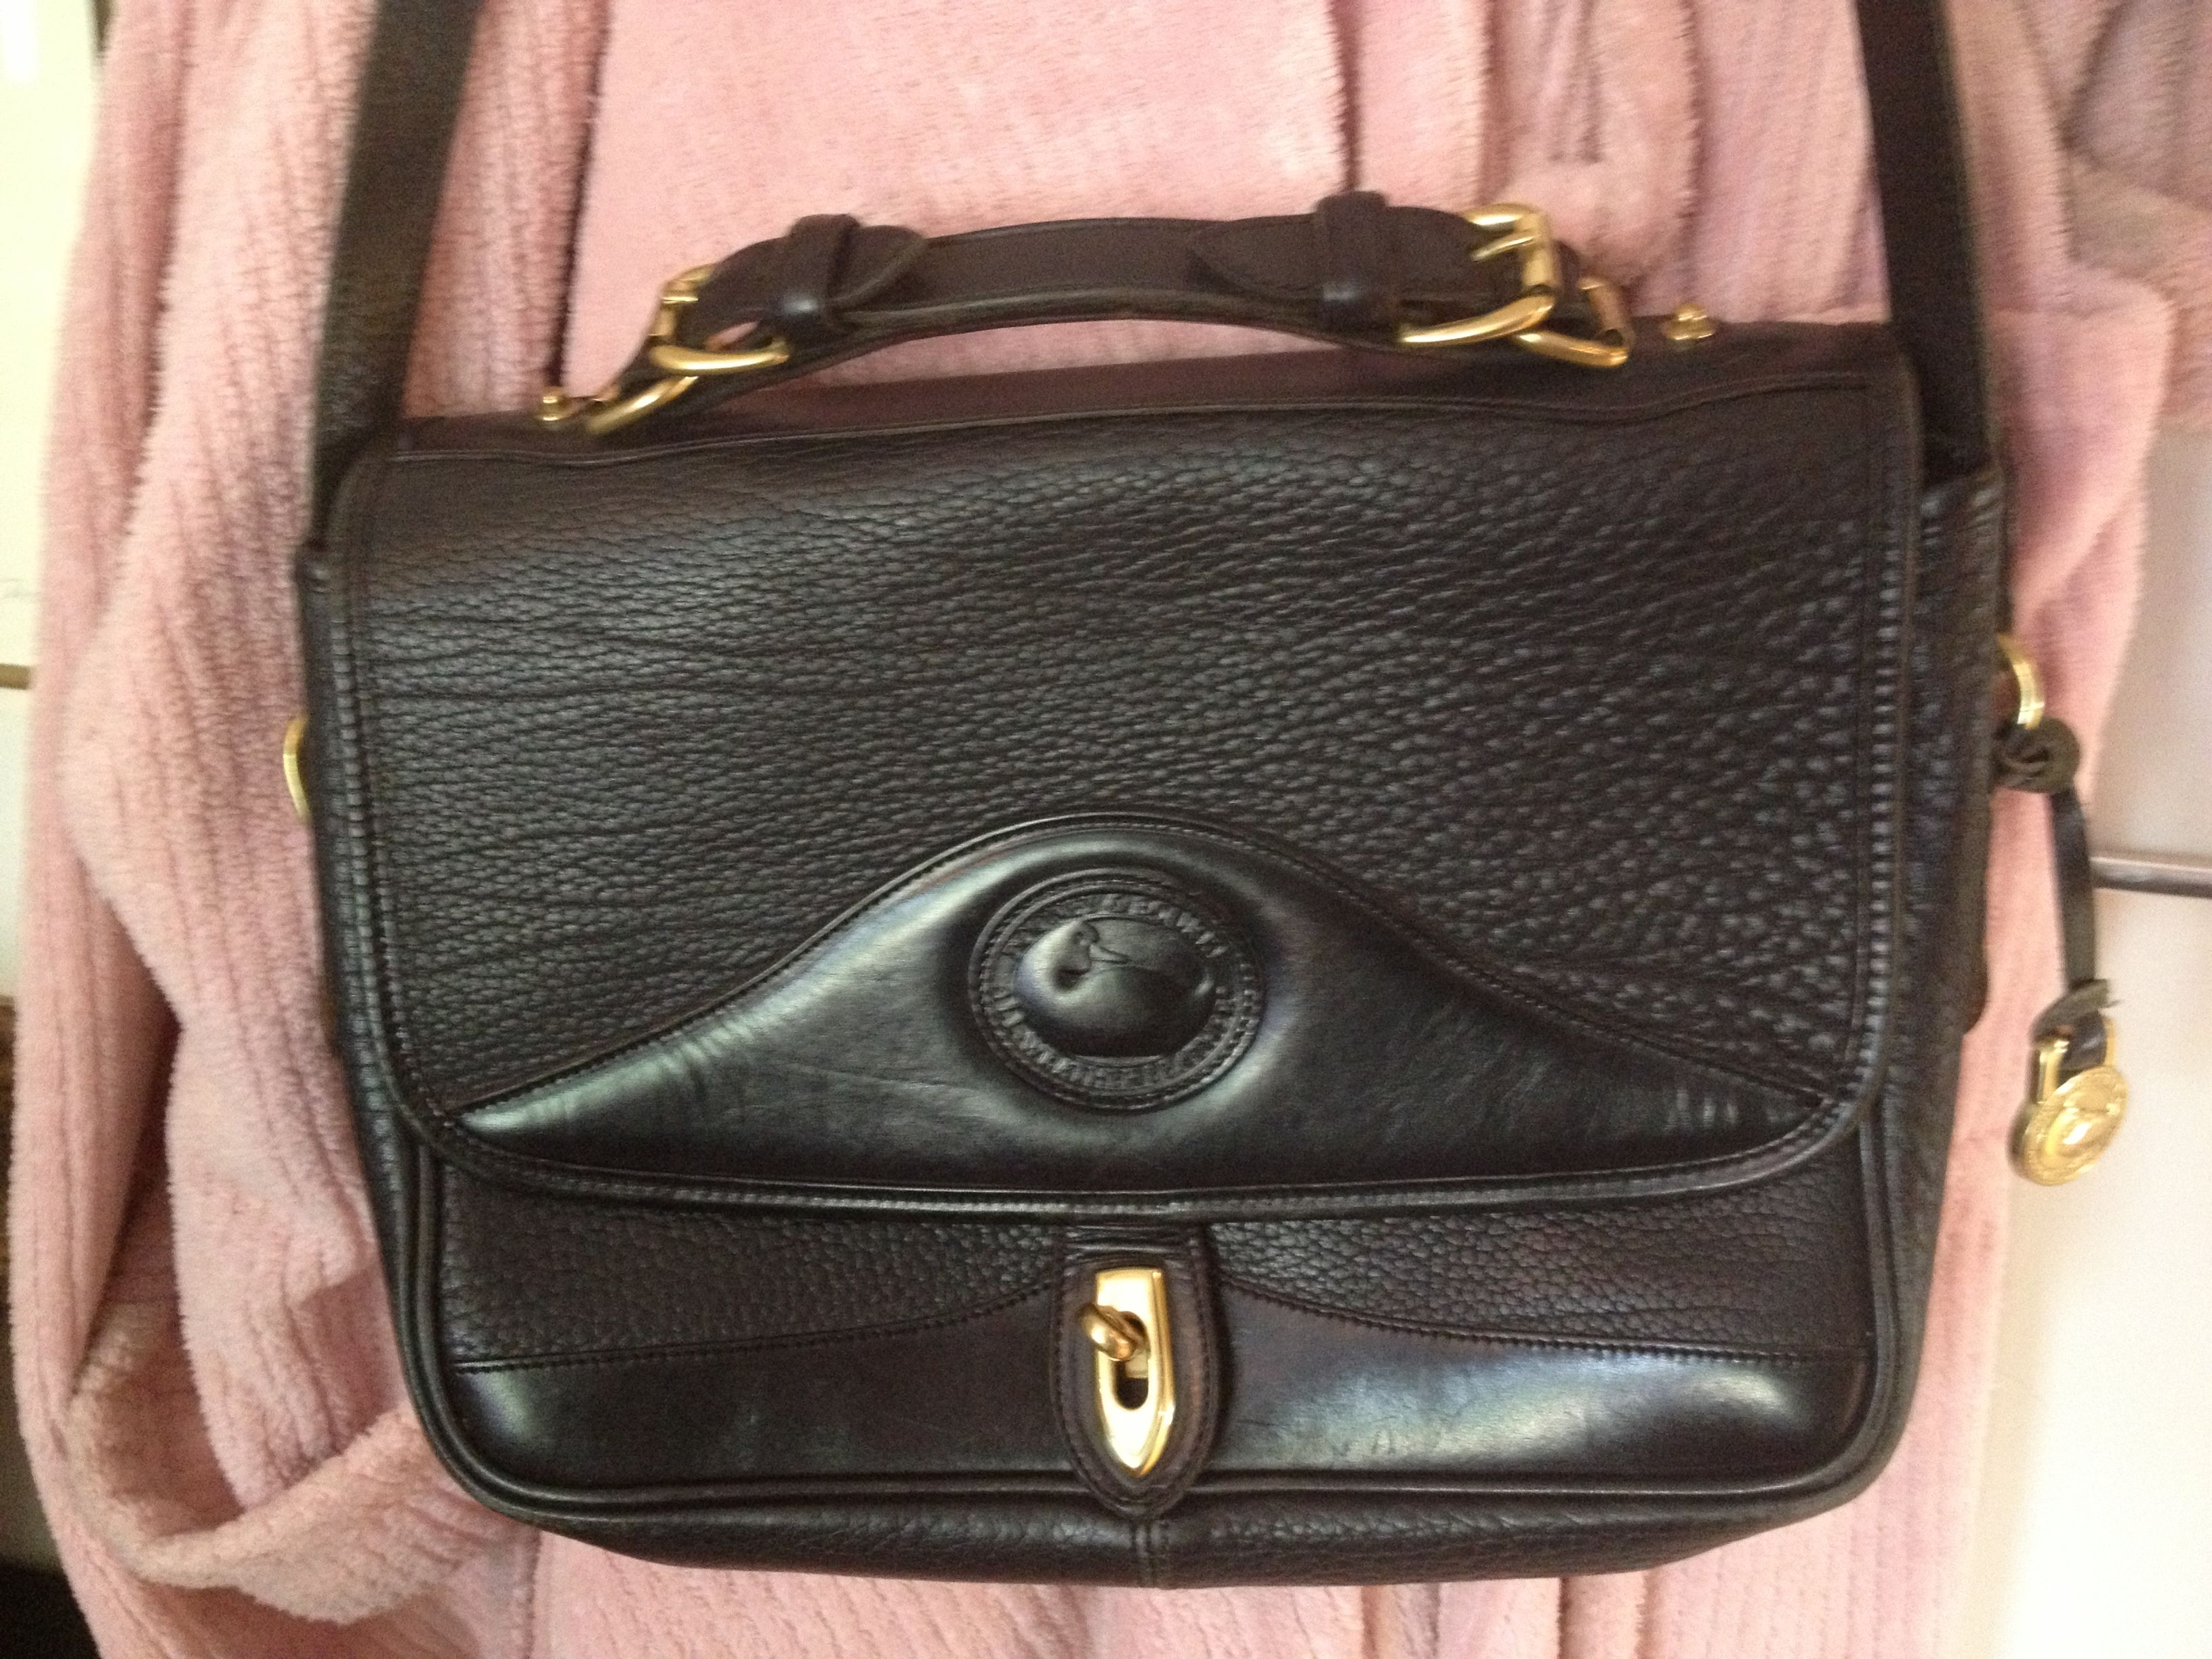 AUTH DOONEY SATCHEL LAPTOP BAG OVERBODY OR HANDLE  SALE 65.00 SHALL02@HOTMAIL.COM